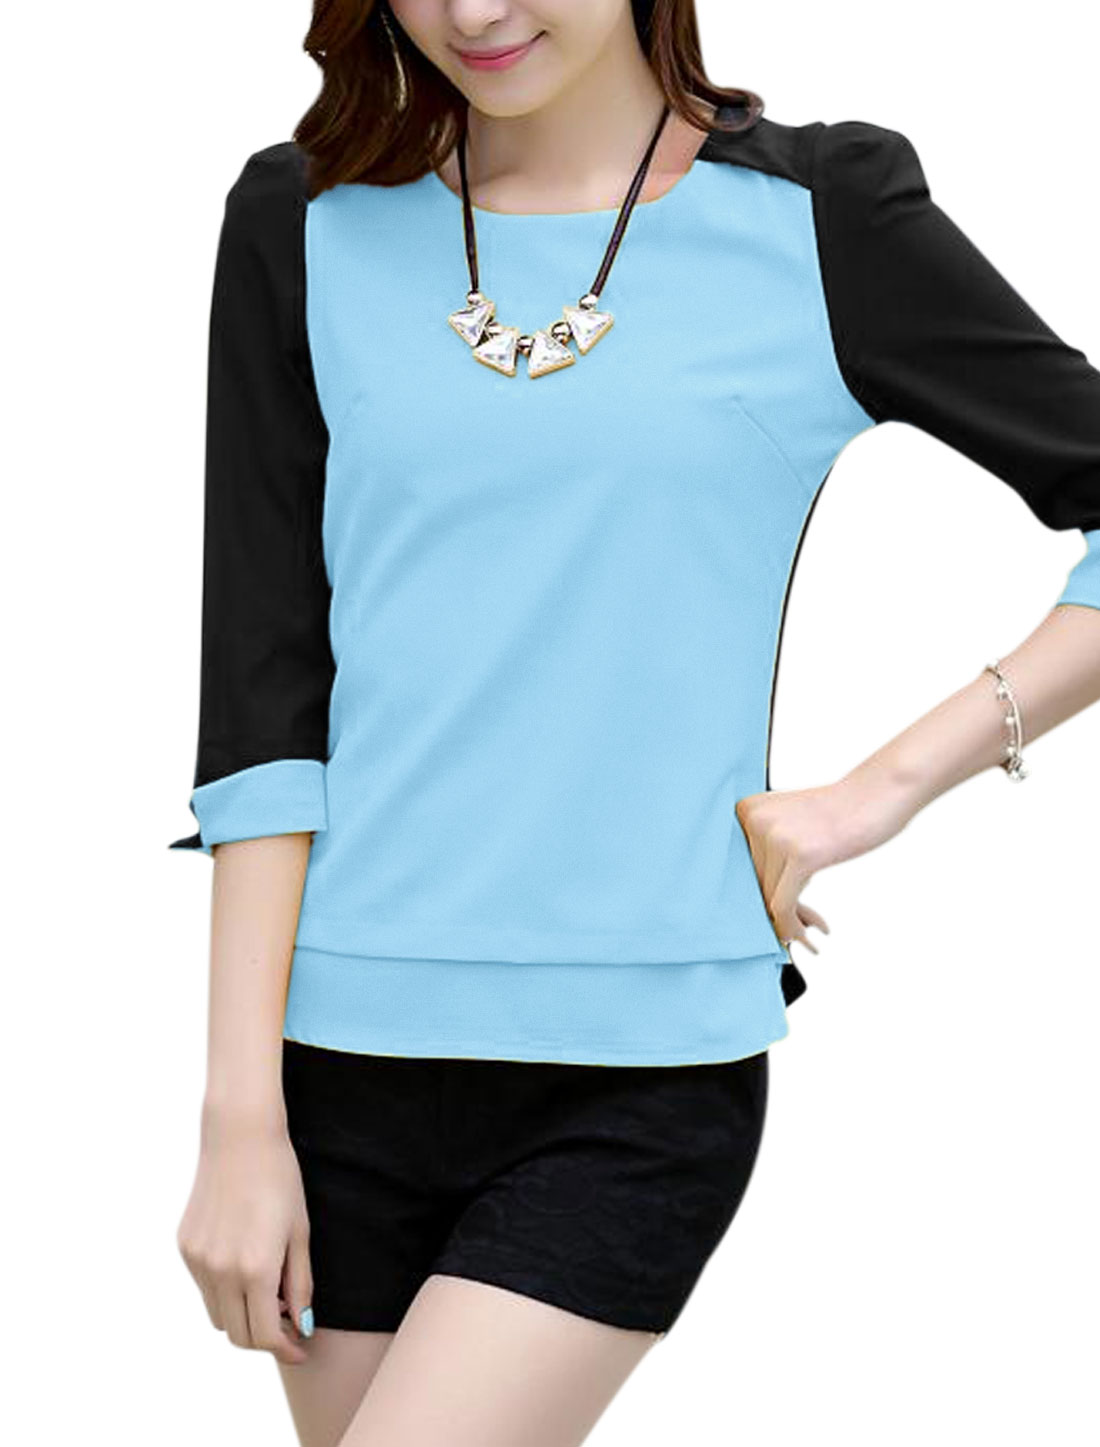 Lady's Round Neck Panel Zip Back 3/4 Sleeve Chiffon Blouse Light Blue M